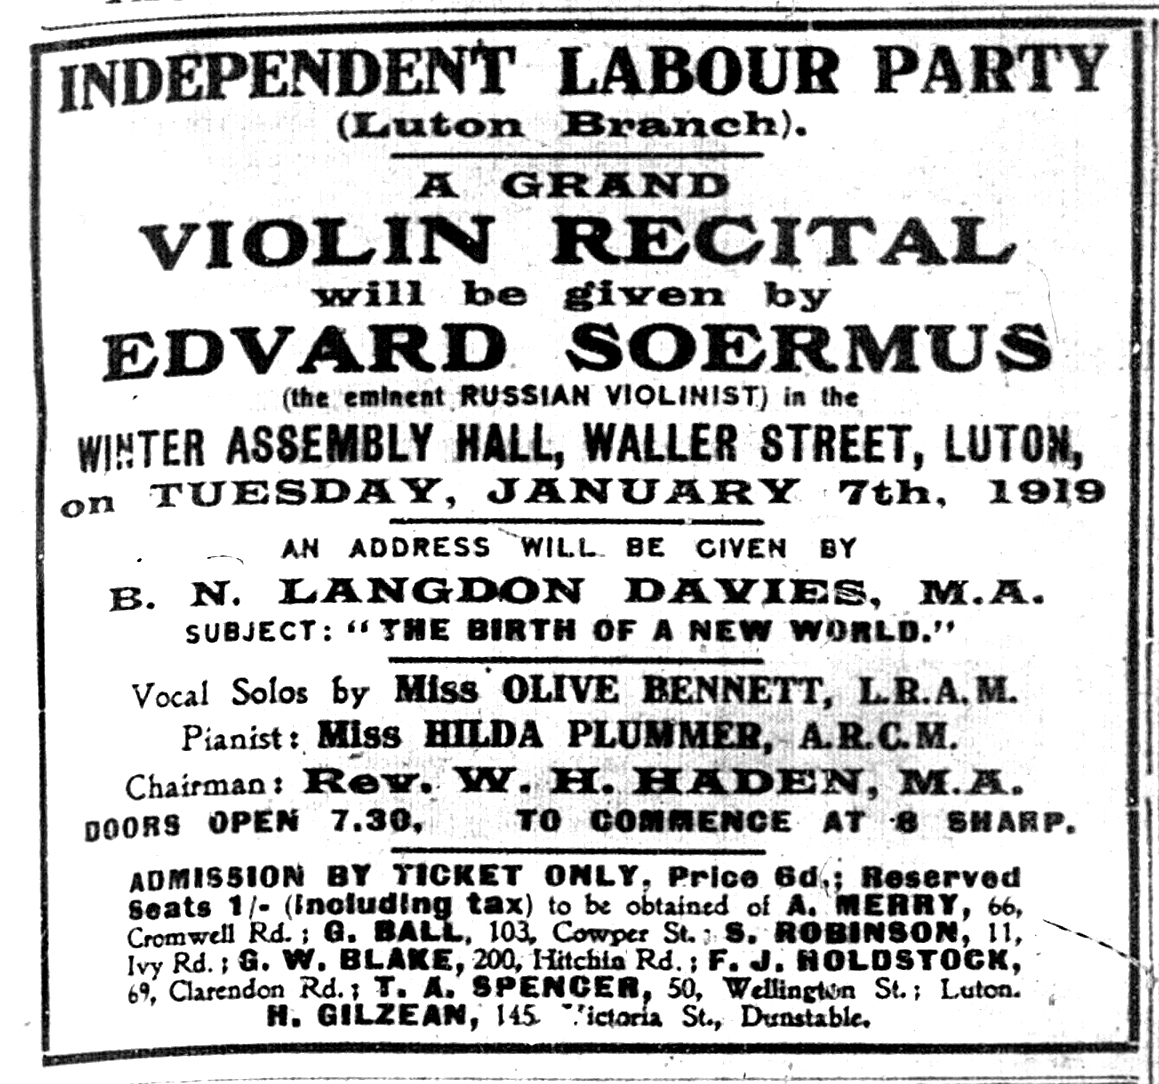 Soermus concert advert